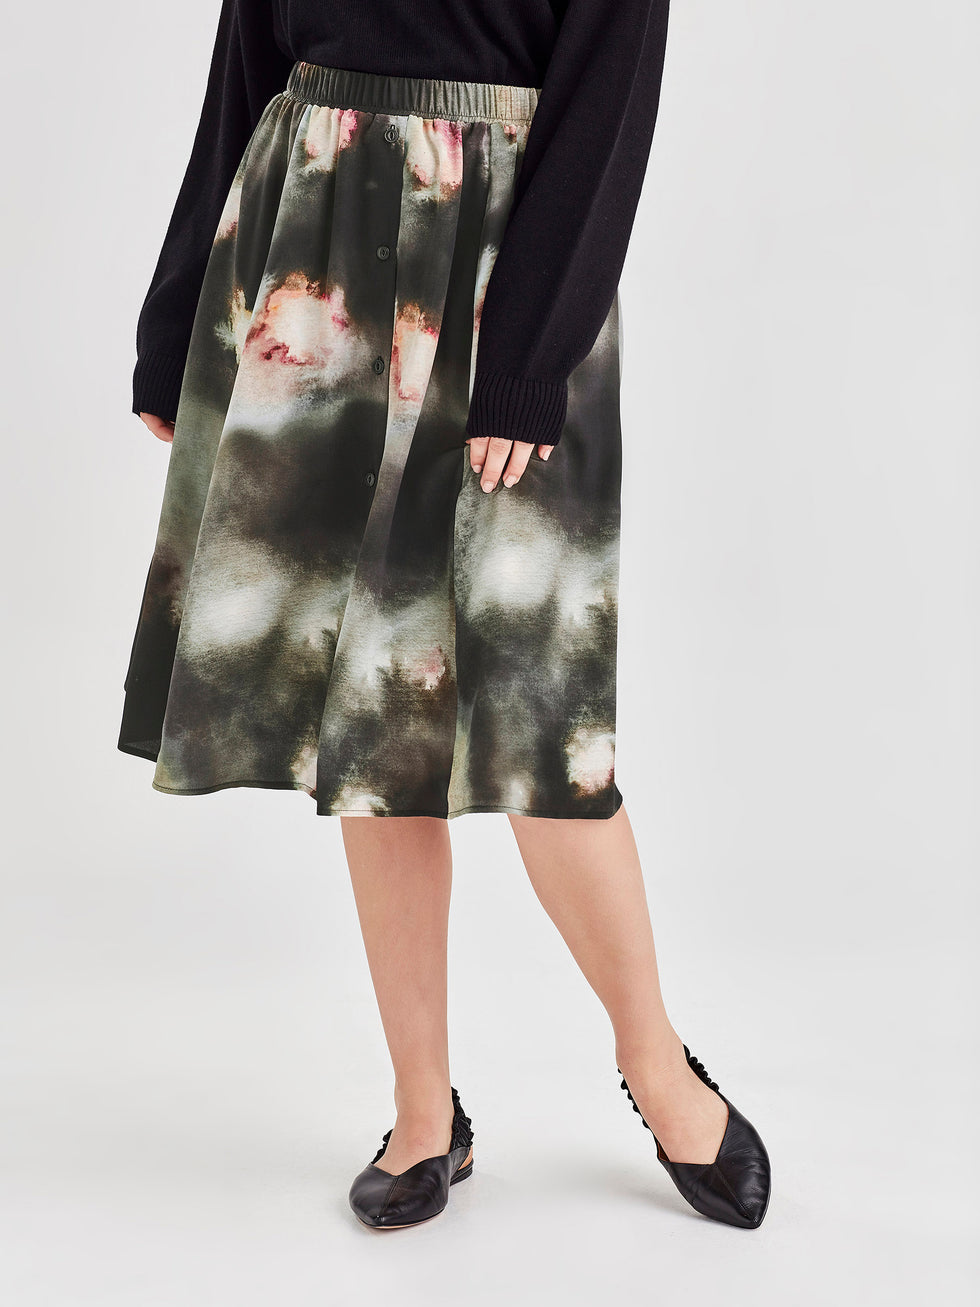 Strike Skirt (Super Nova Silk) Galaxy